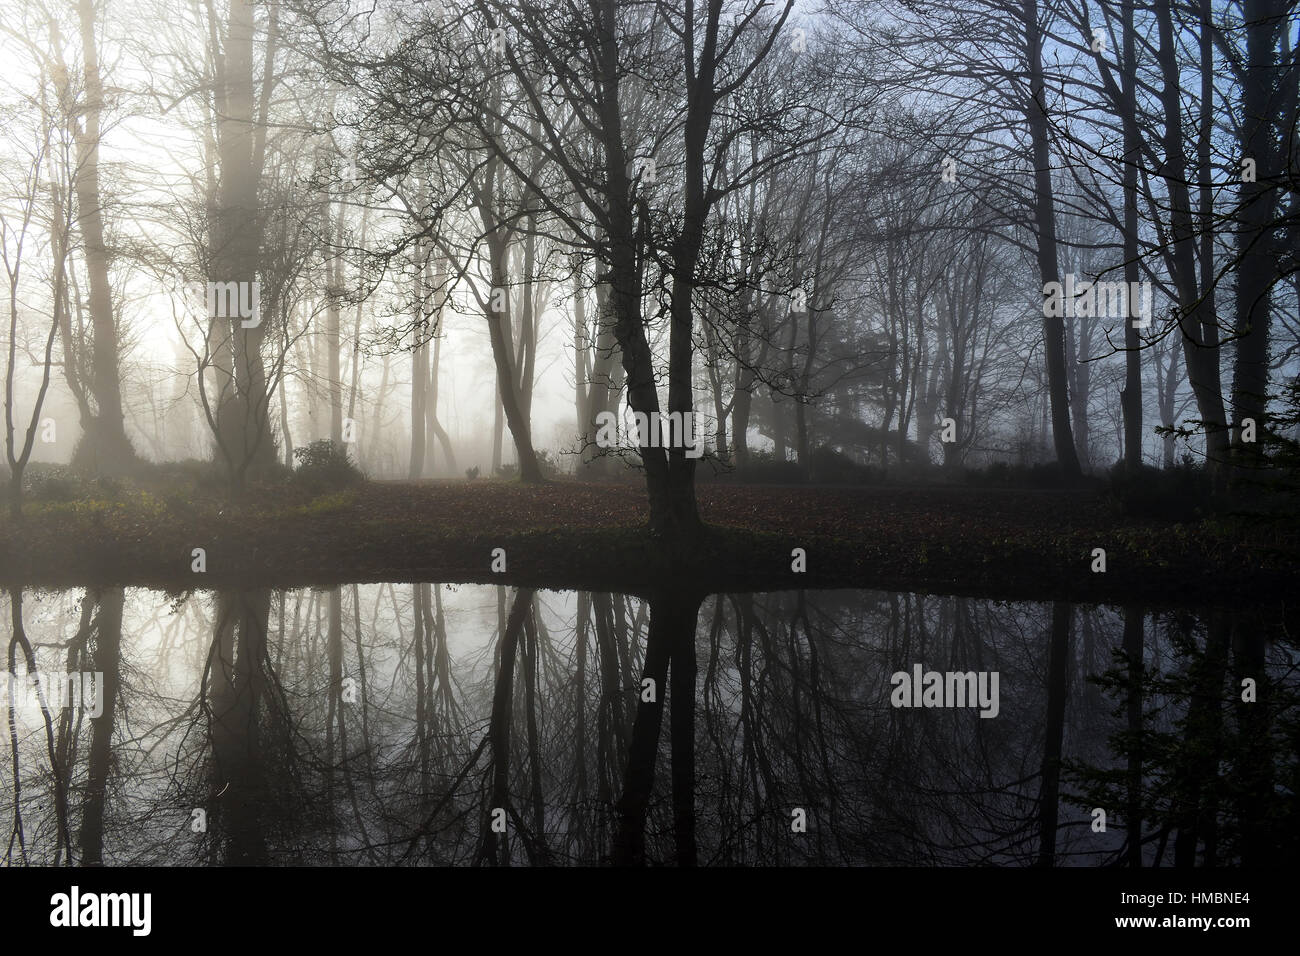 Misty Trees - Stock Image